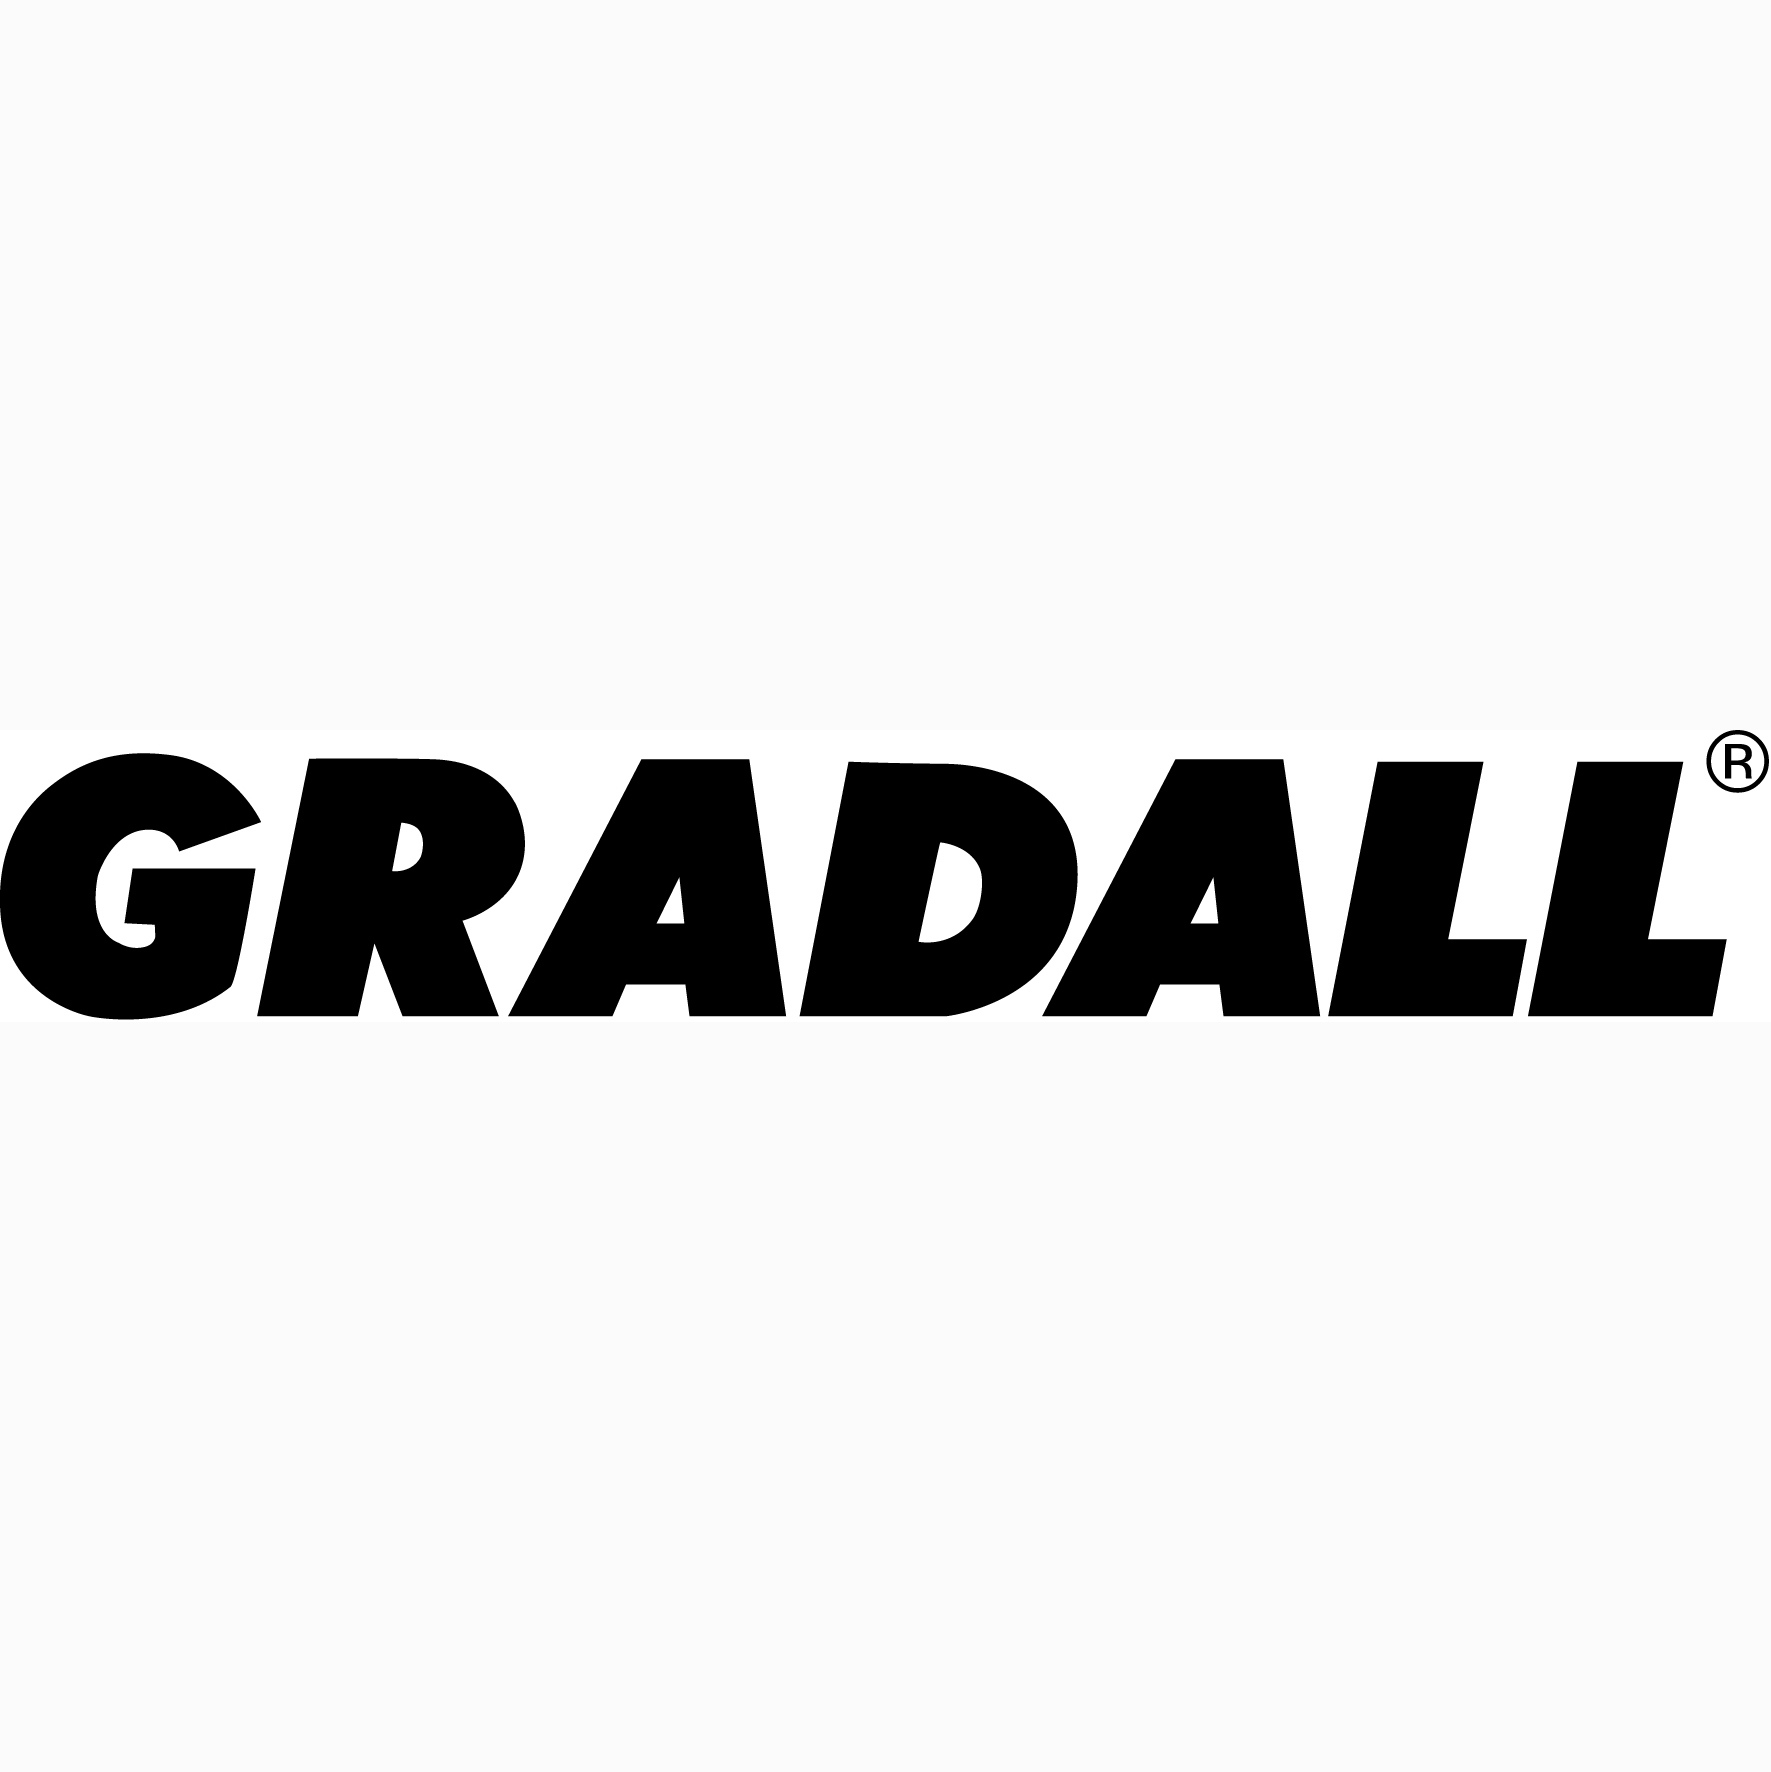 Gradall blk copy